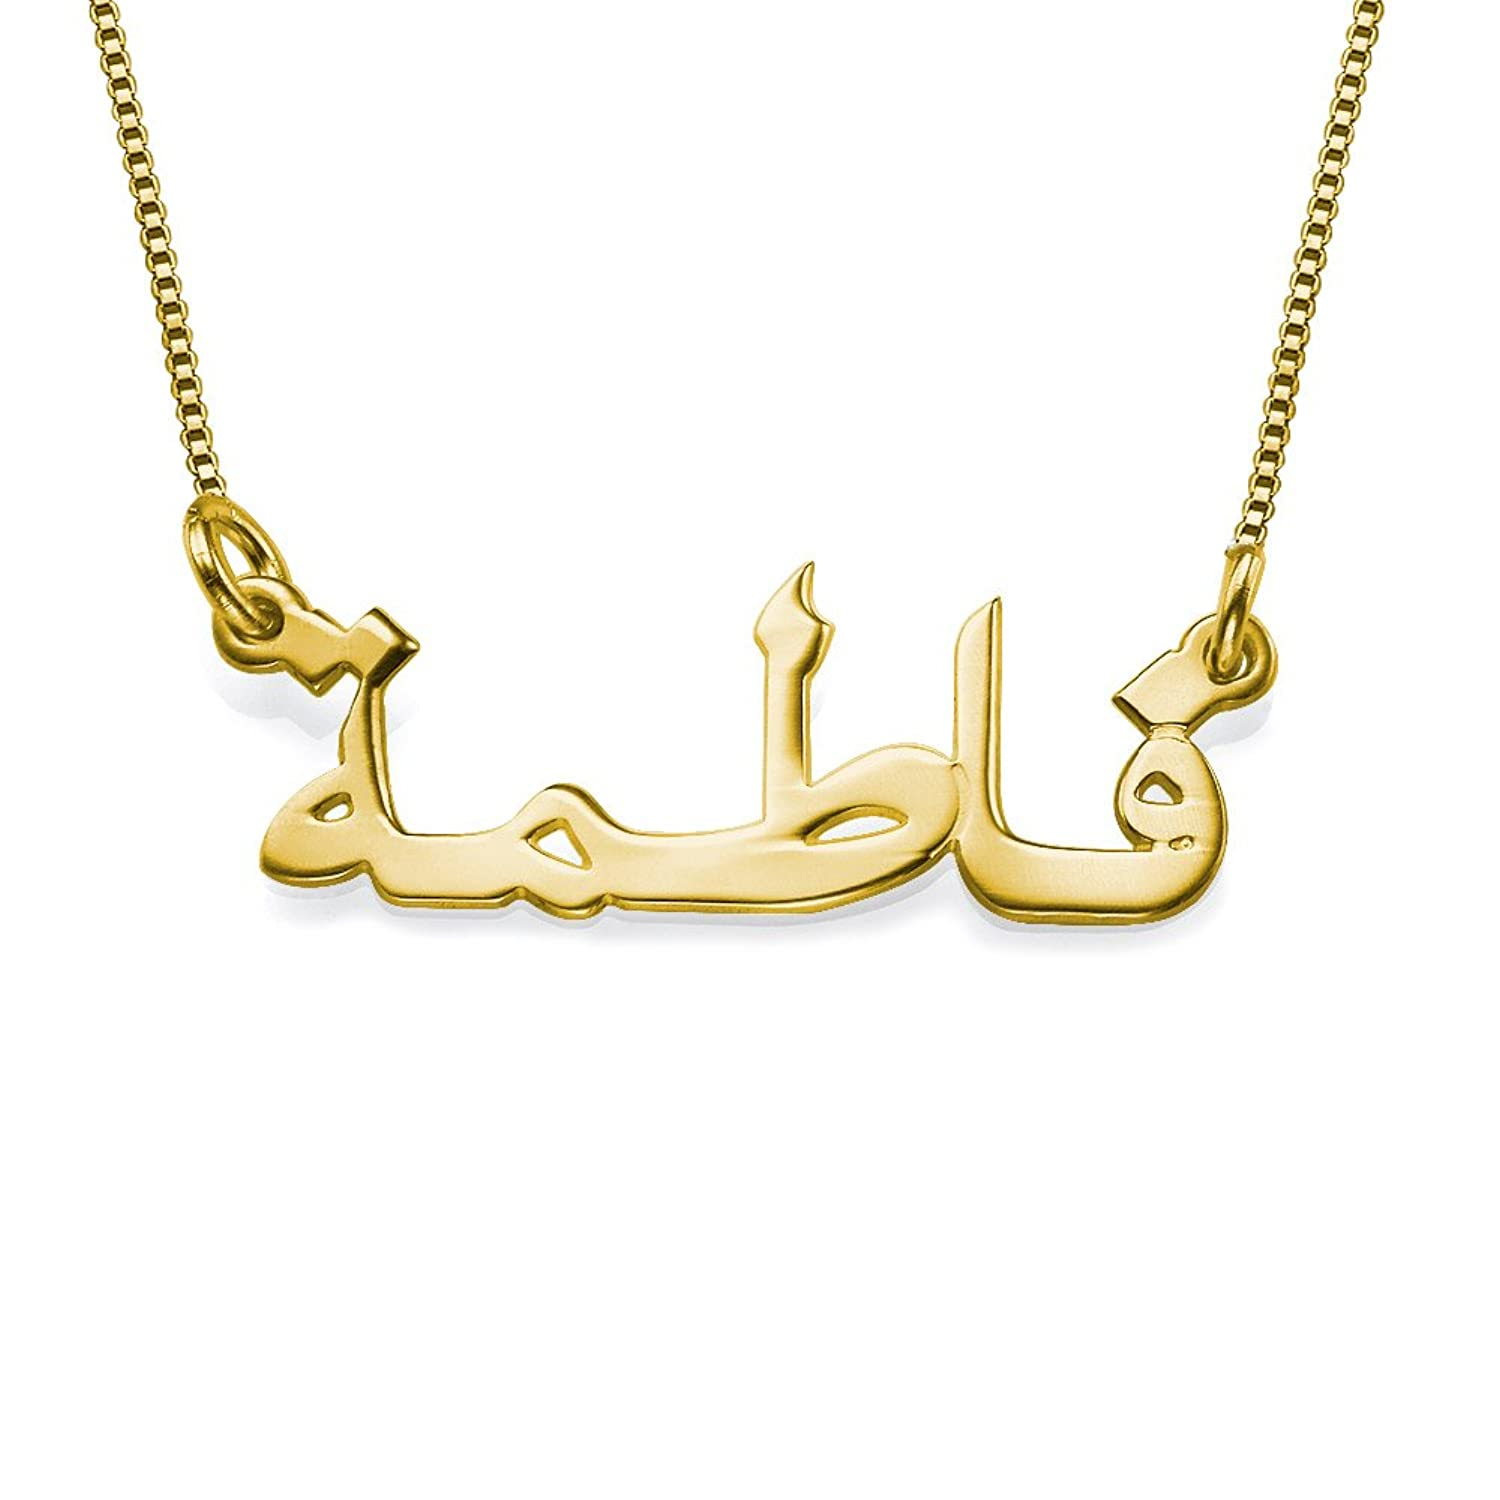 18k GoldPlated Arabic Name Necklace Personalised with Any Name